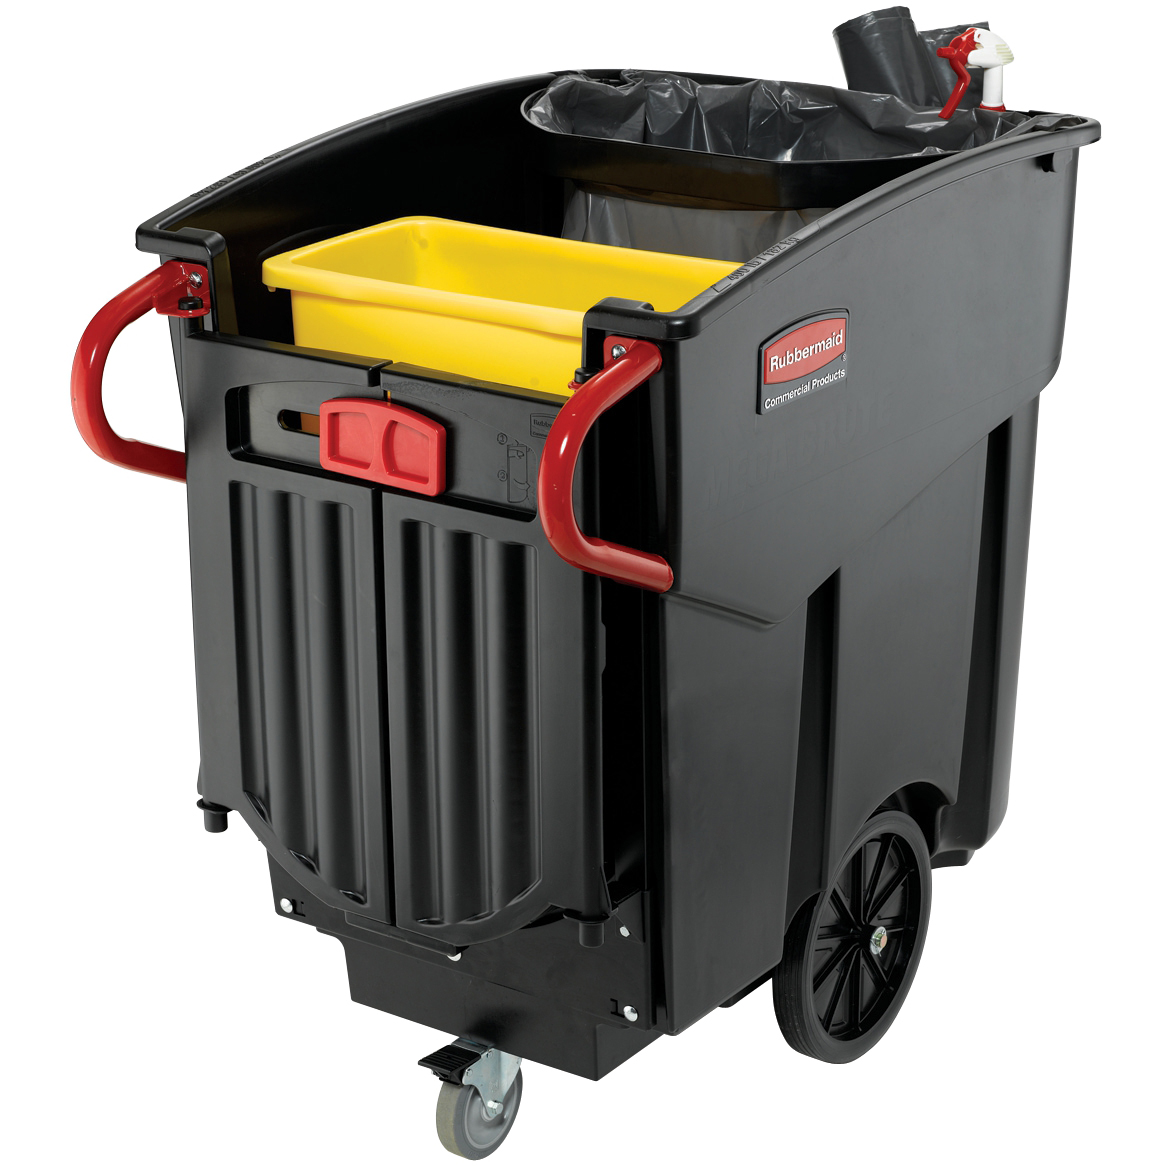 Rubbermaid Mega Brute Waste Collection Cart 450 Litres W1330xD700xH1080mm Ref FG9W7100BLA